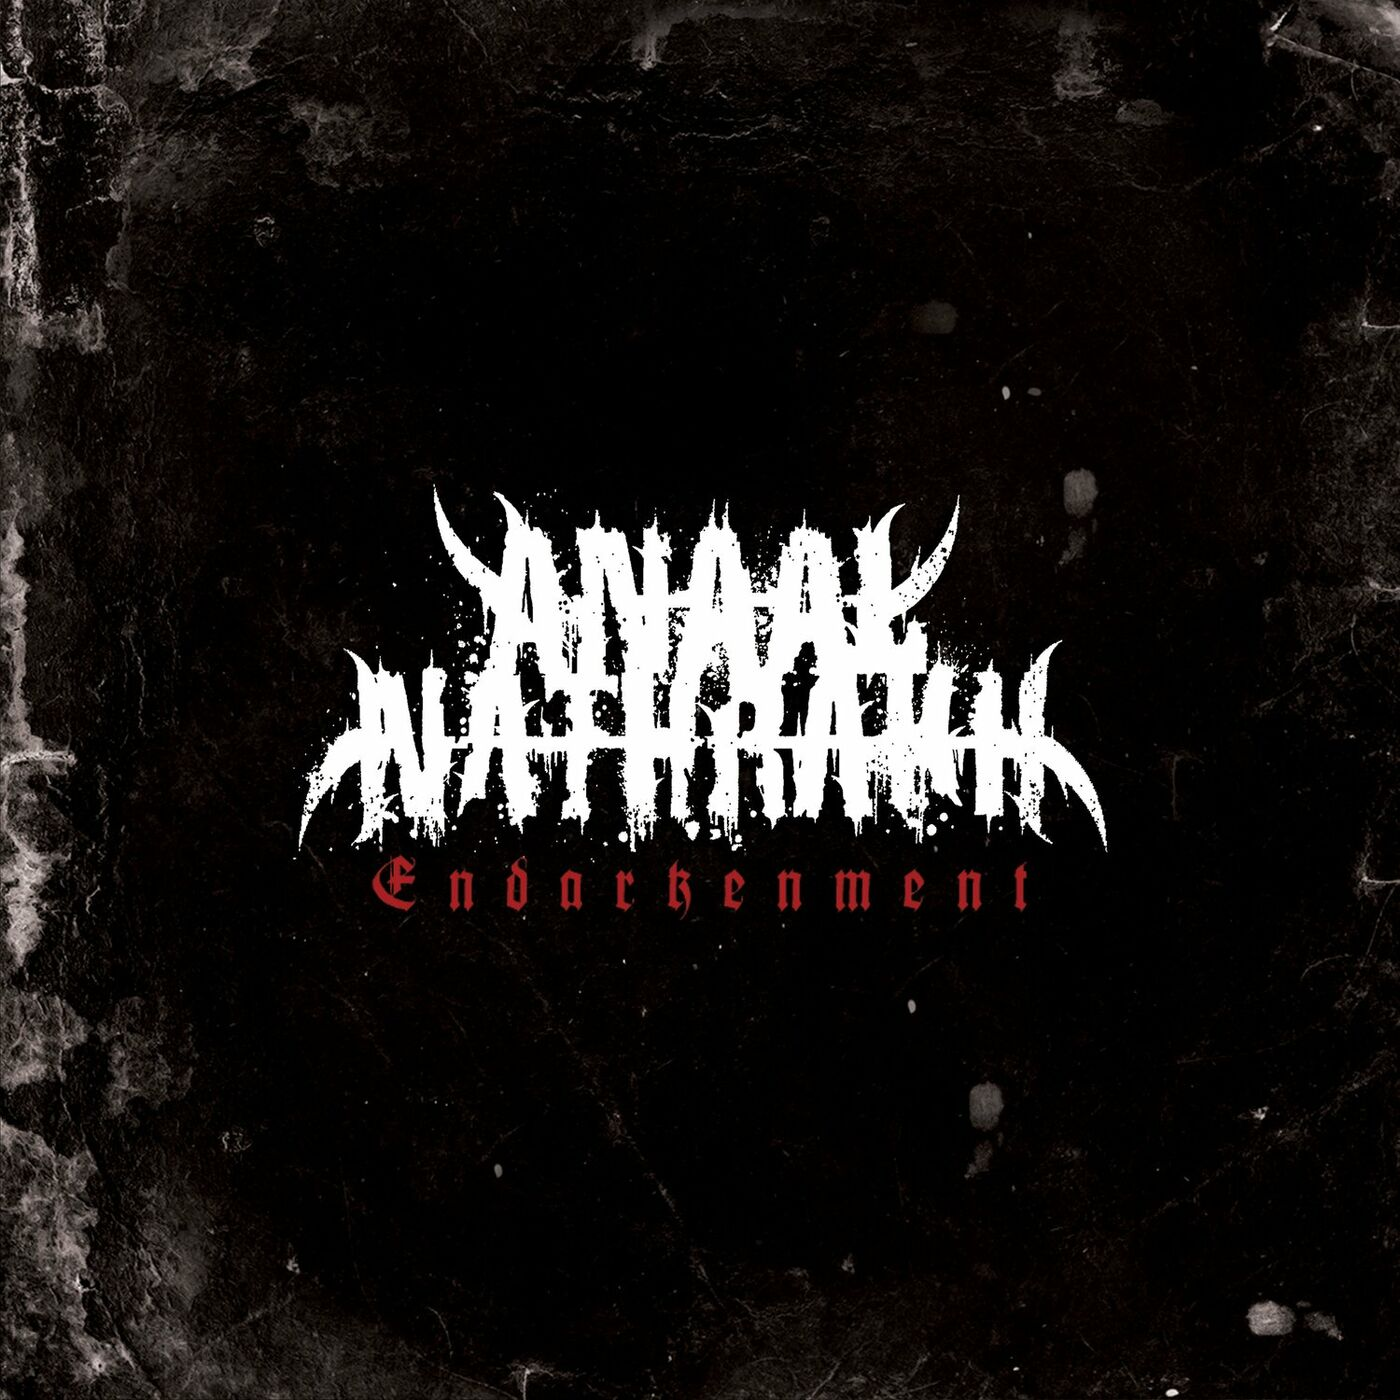 Anaal Nathrakh - The Age of Starlight Ends [single] (2020)